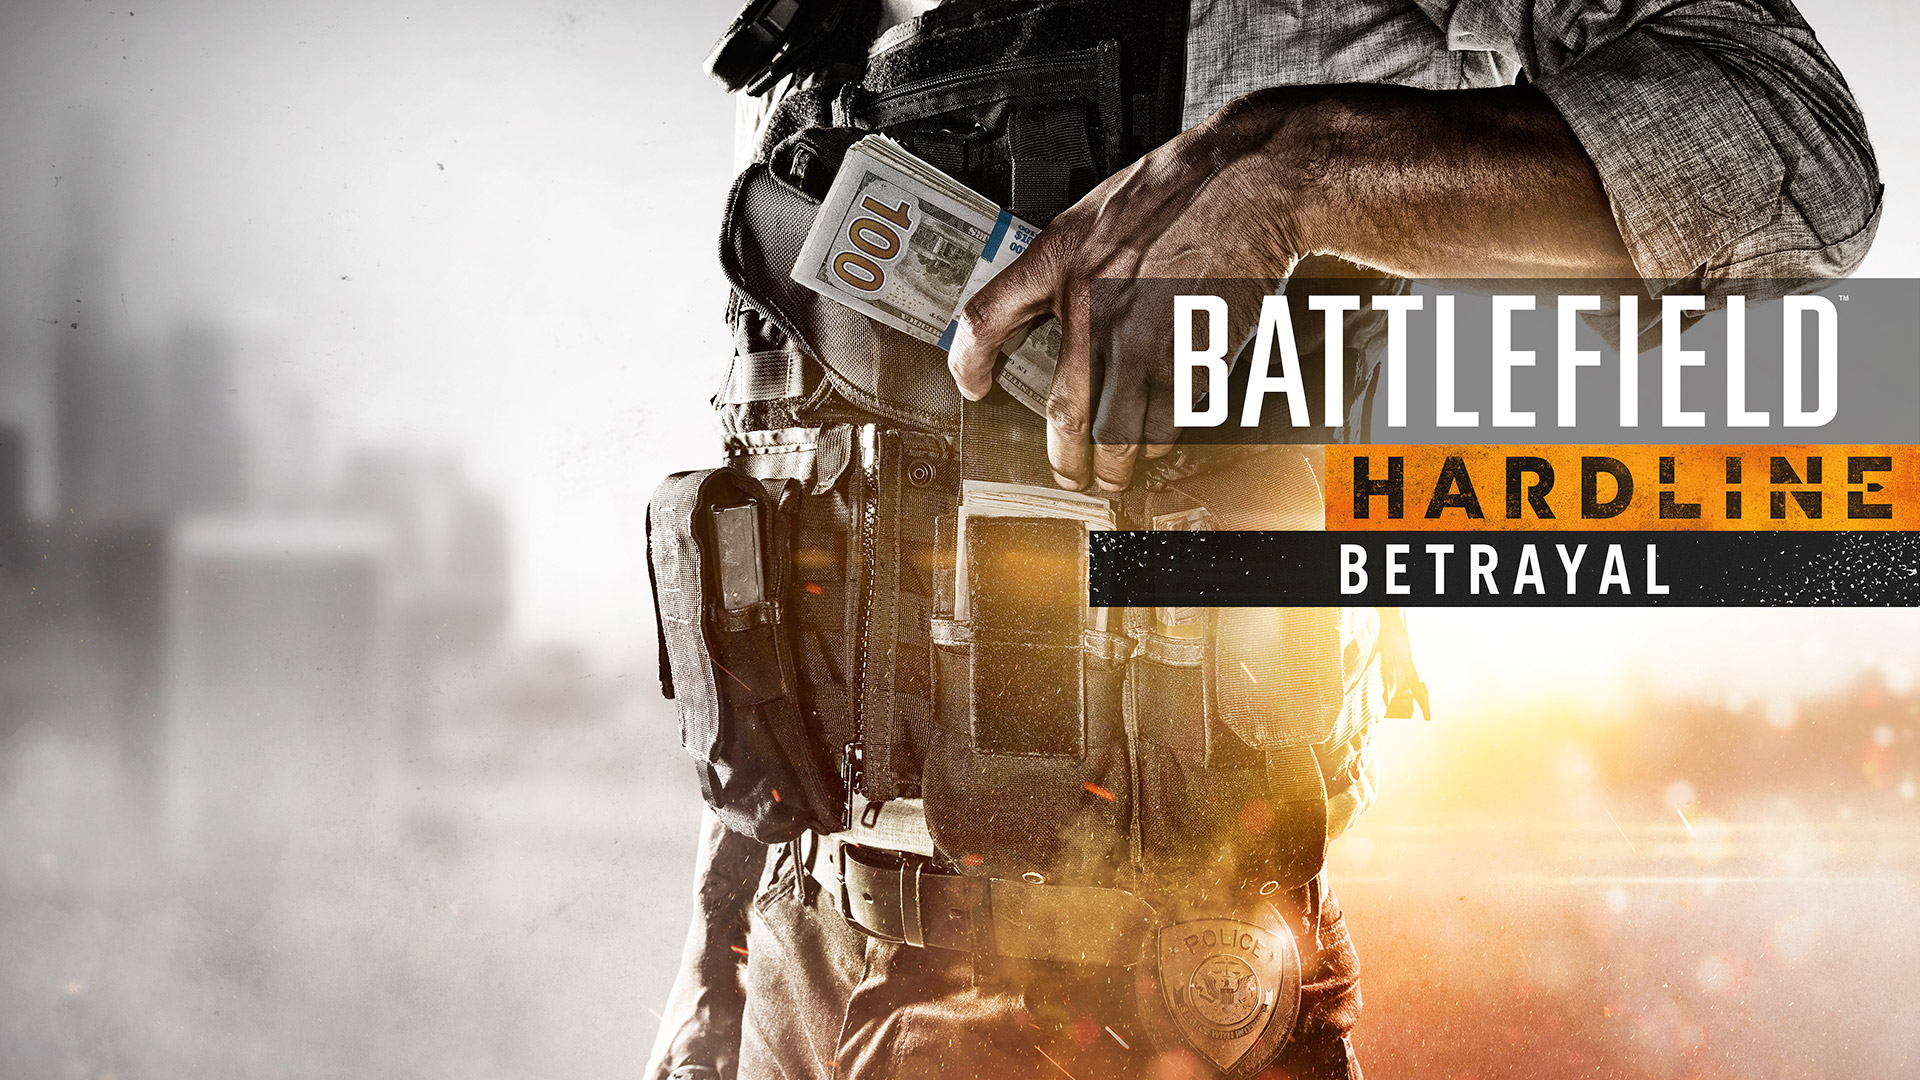 Battlefield Hardline Betrayal Dlc Additions Detailed Vg247